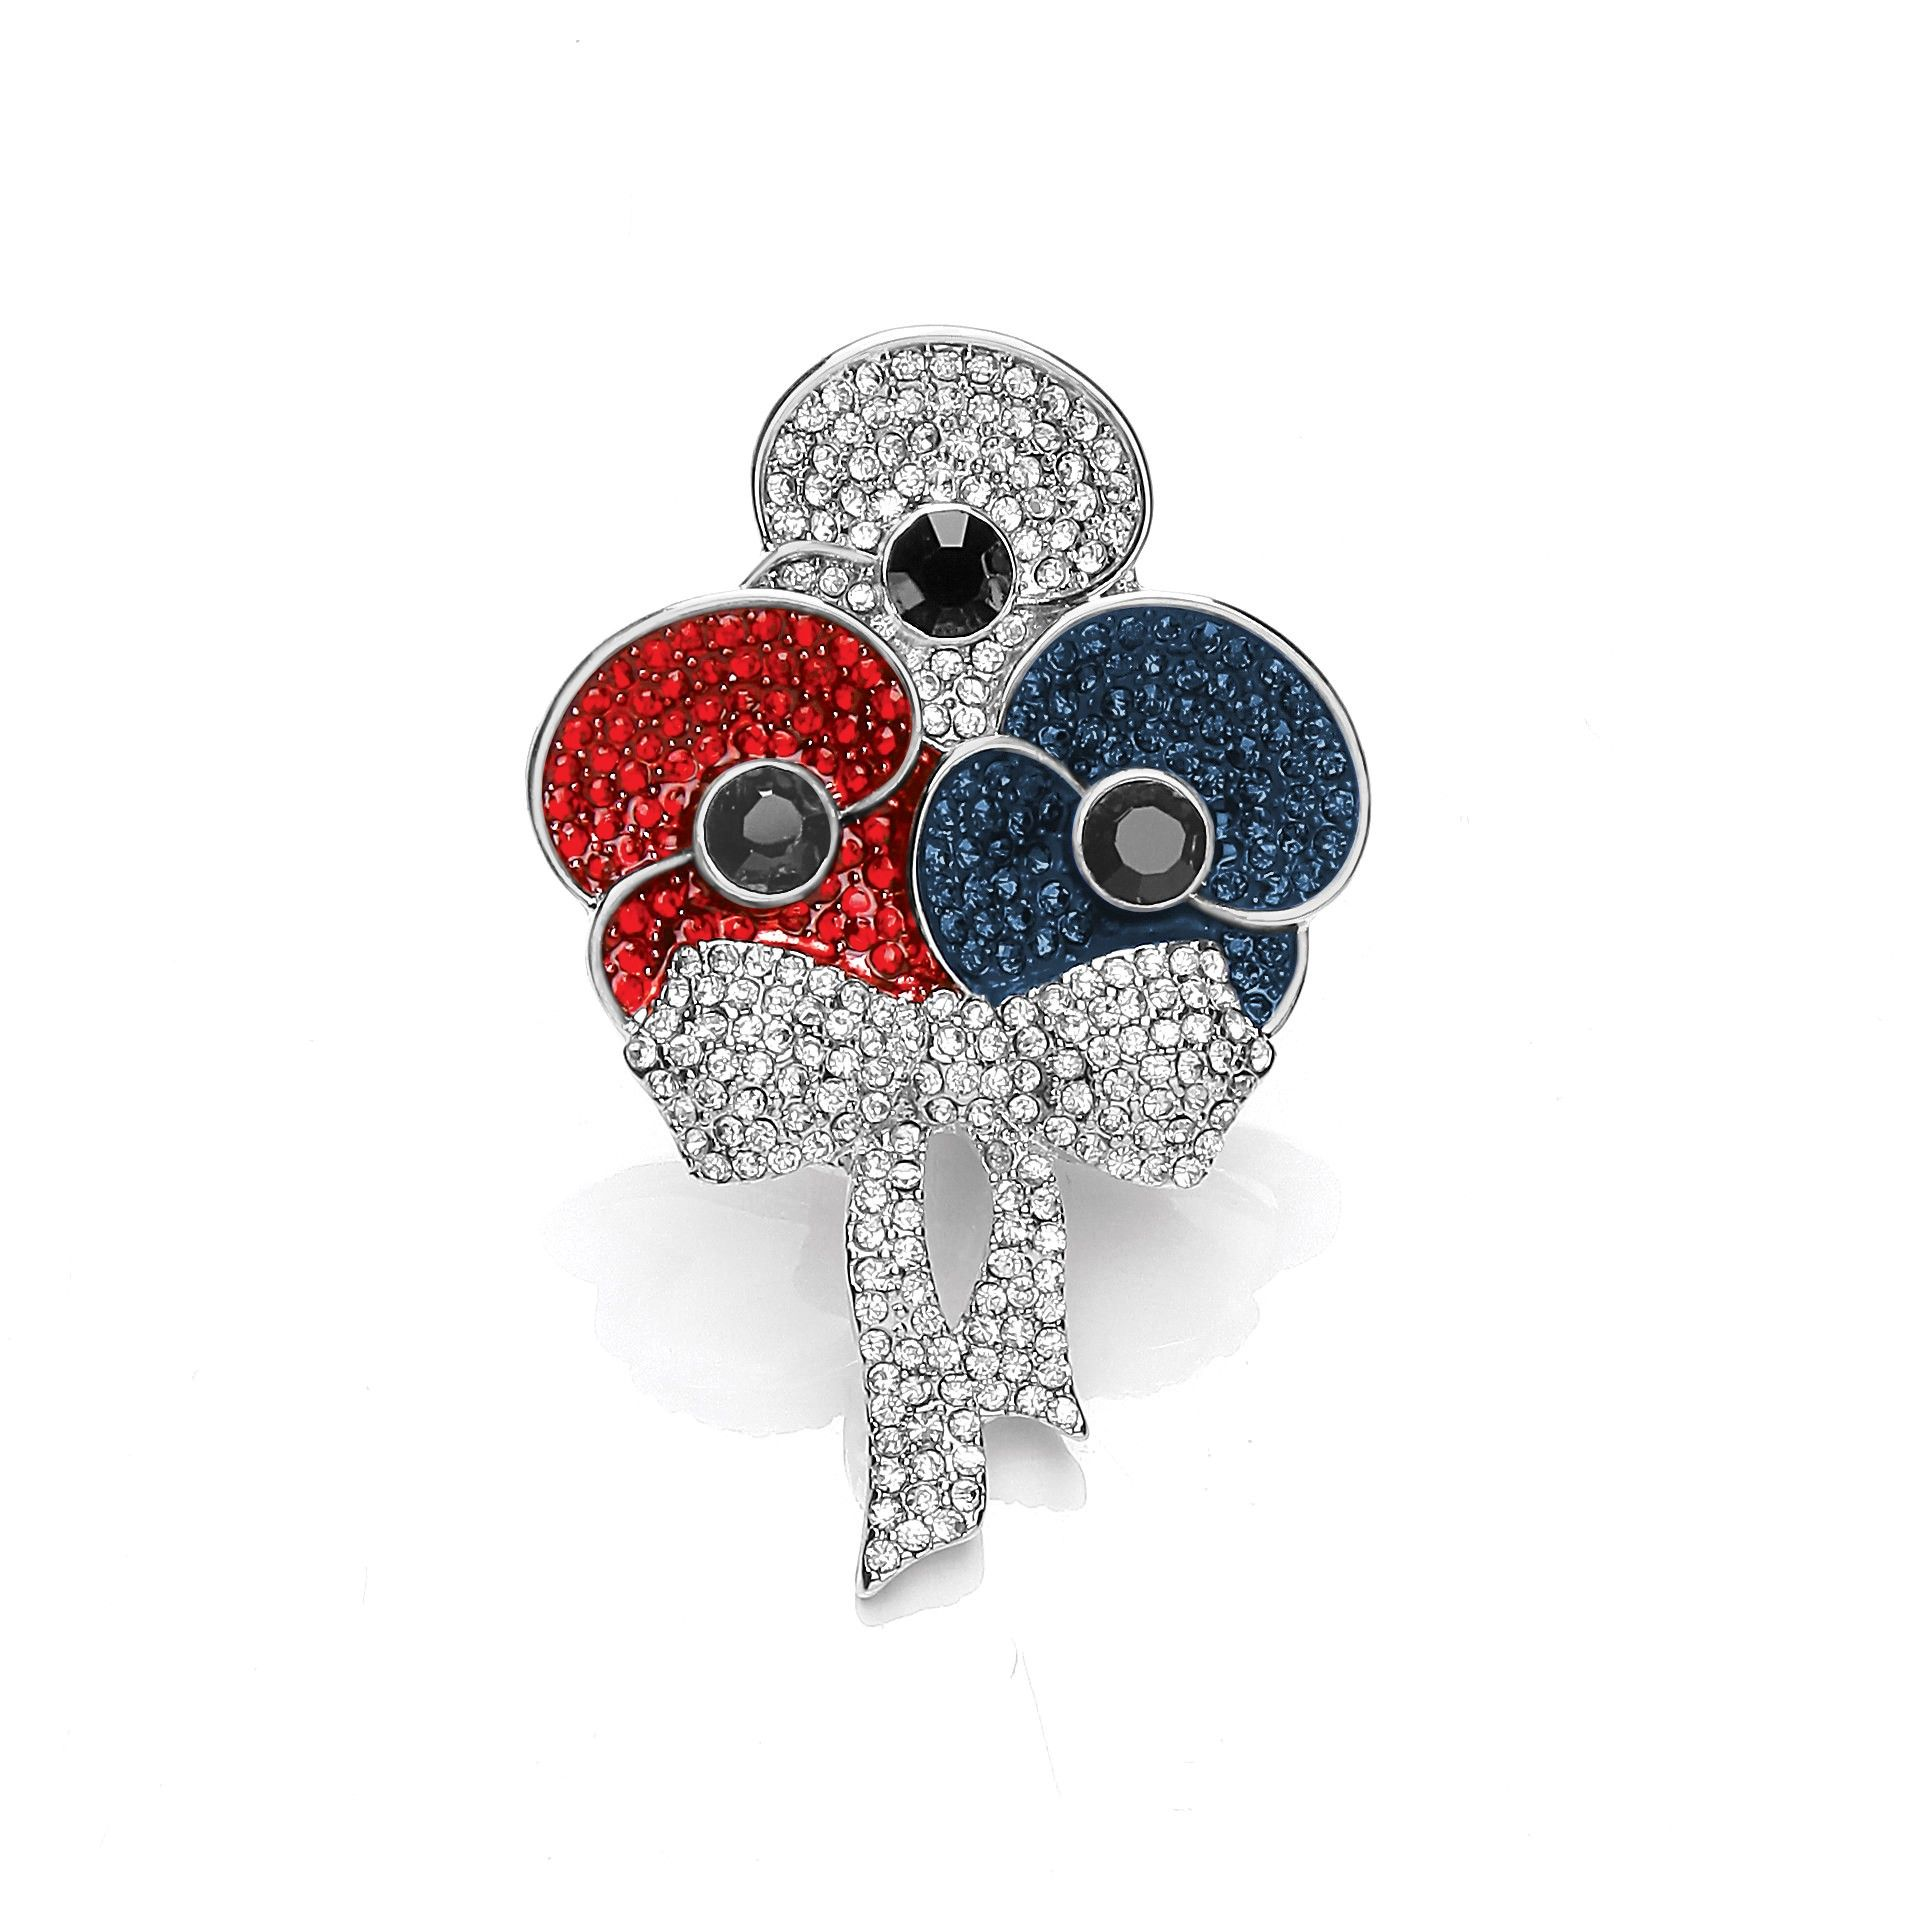 The Official RBL British Bouquet Poppy Brooch Poppy